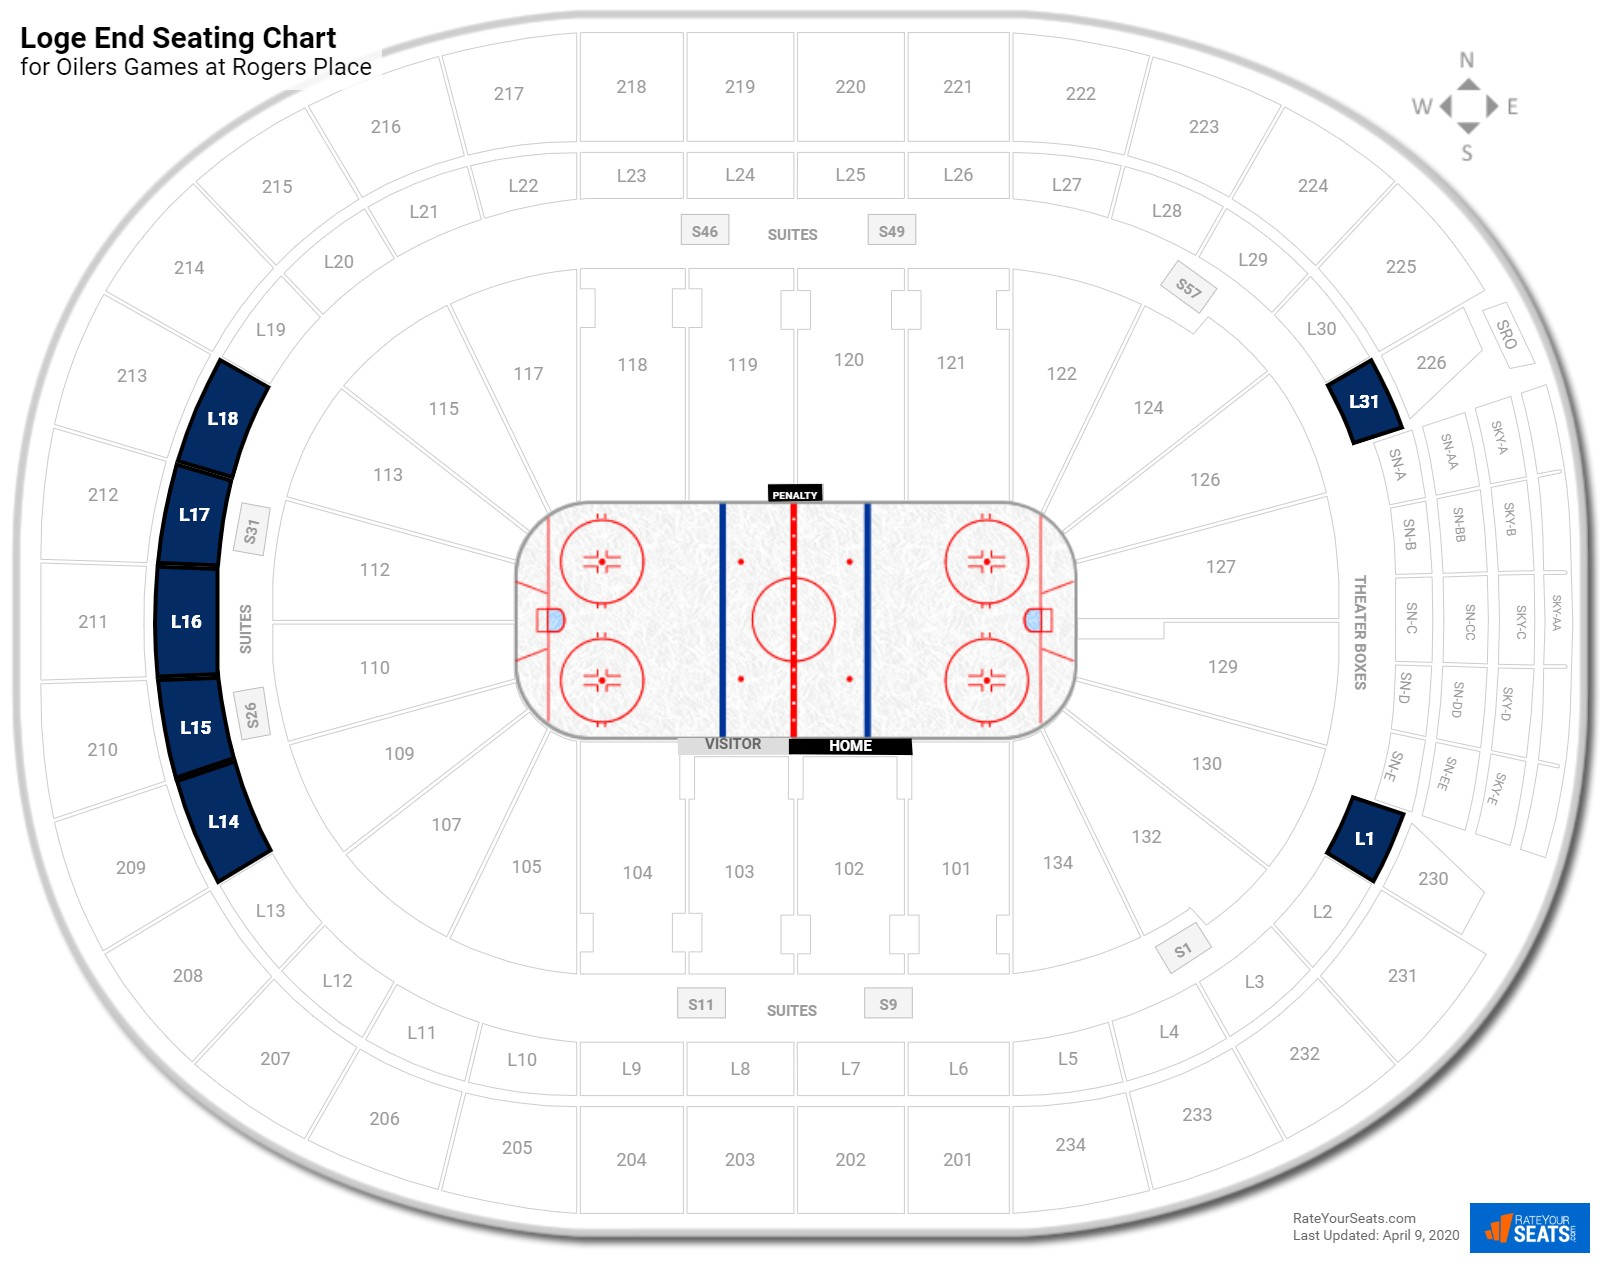 Rogers Place Loge End seating chart